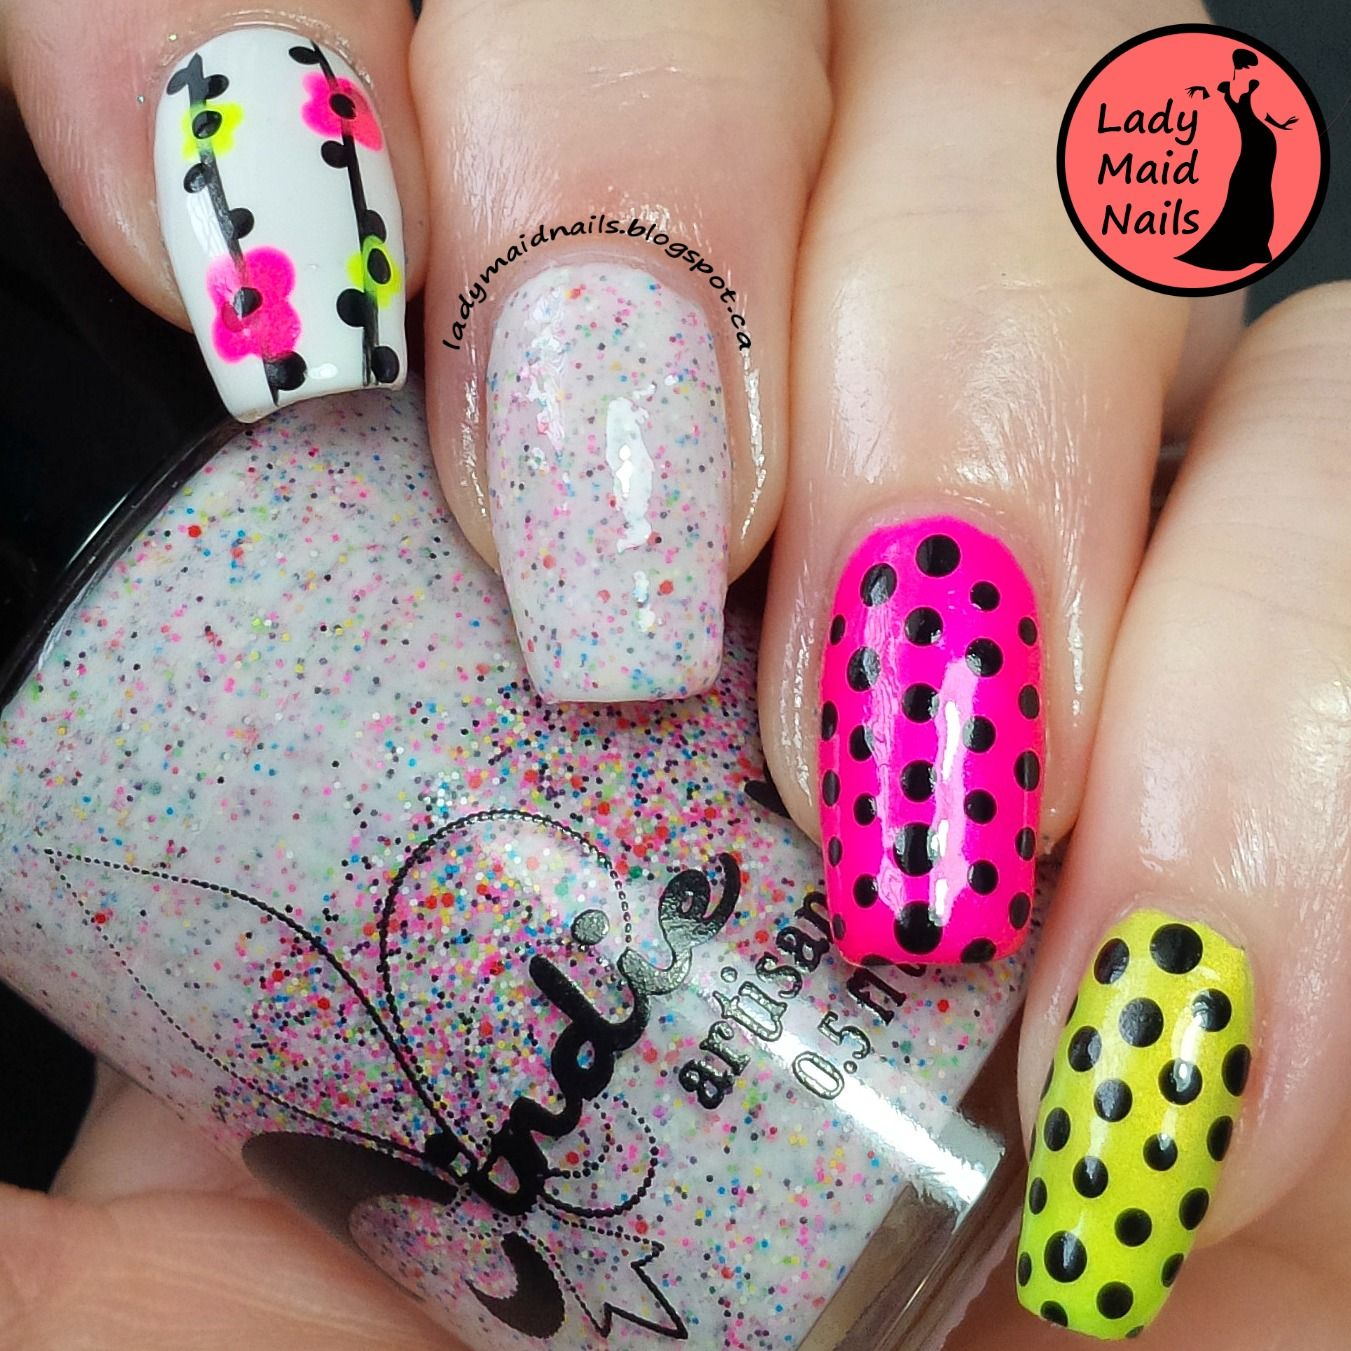 Lady Maid Nails: Jindie, Skittlette | Nail Art - Dots and Dot Art ...